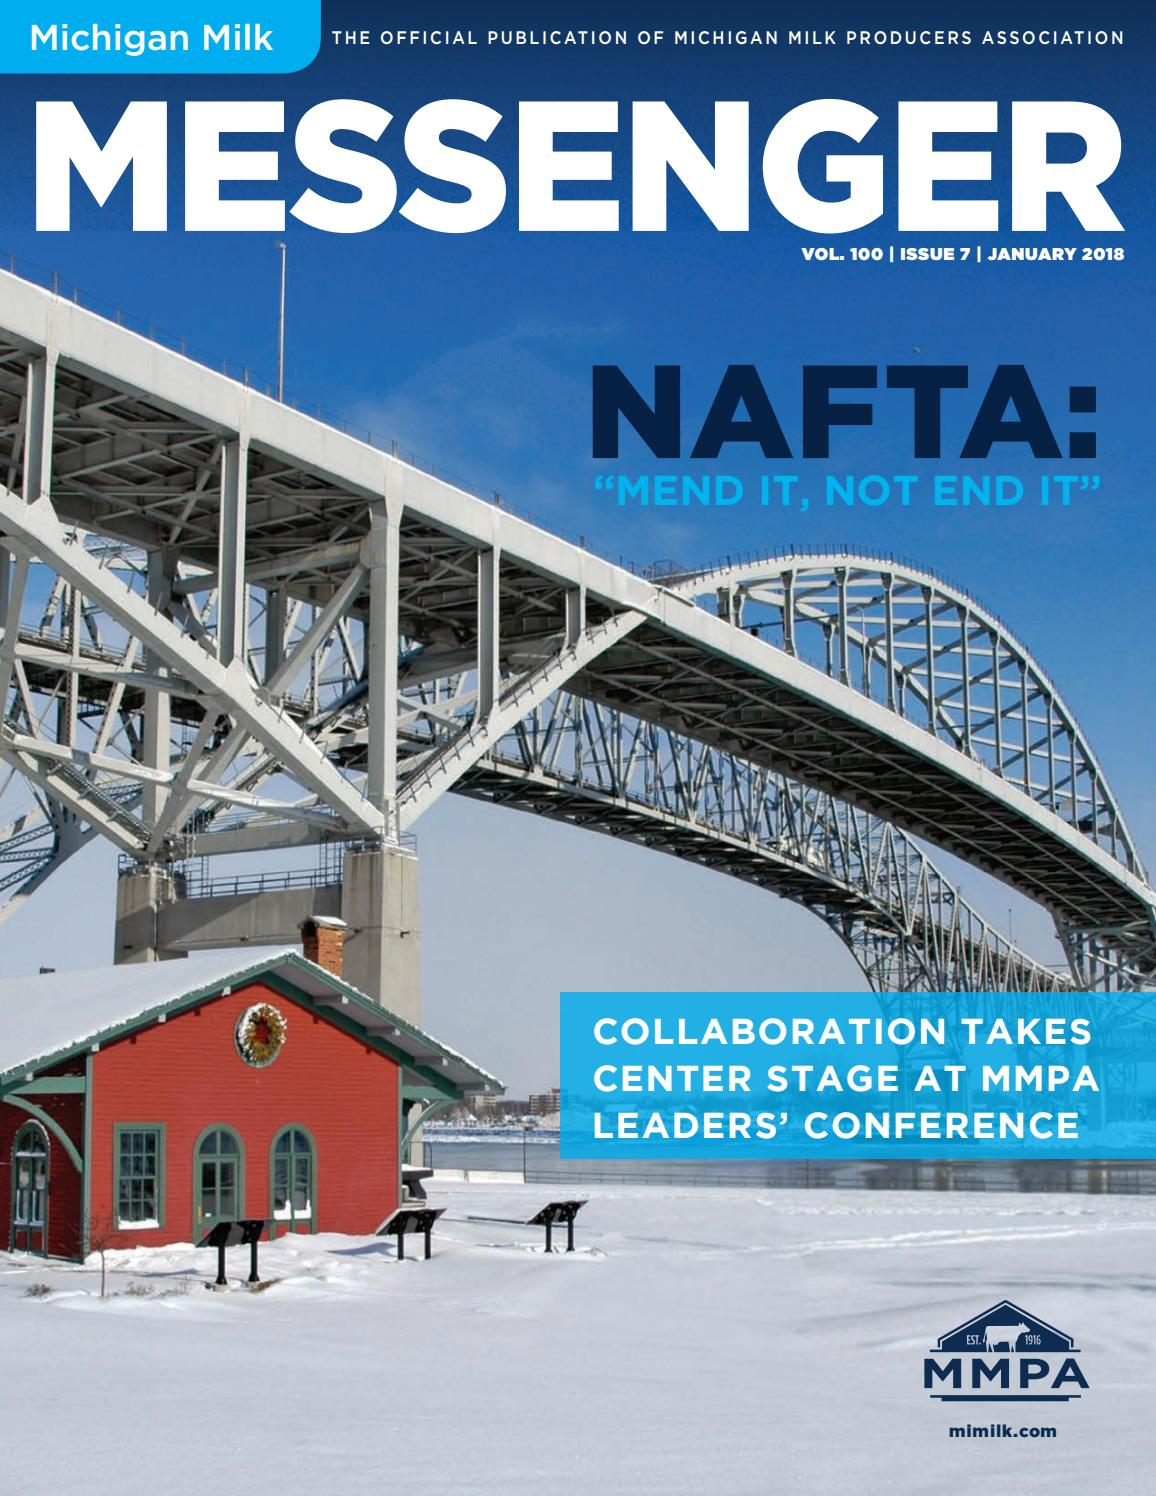 Michigan Milk Messenger: January 2018 by Michigan Milk